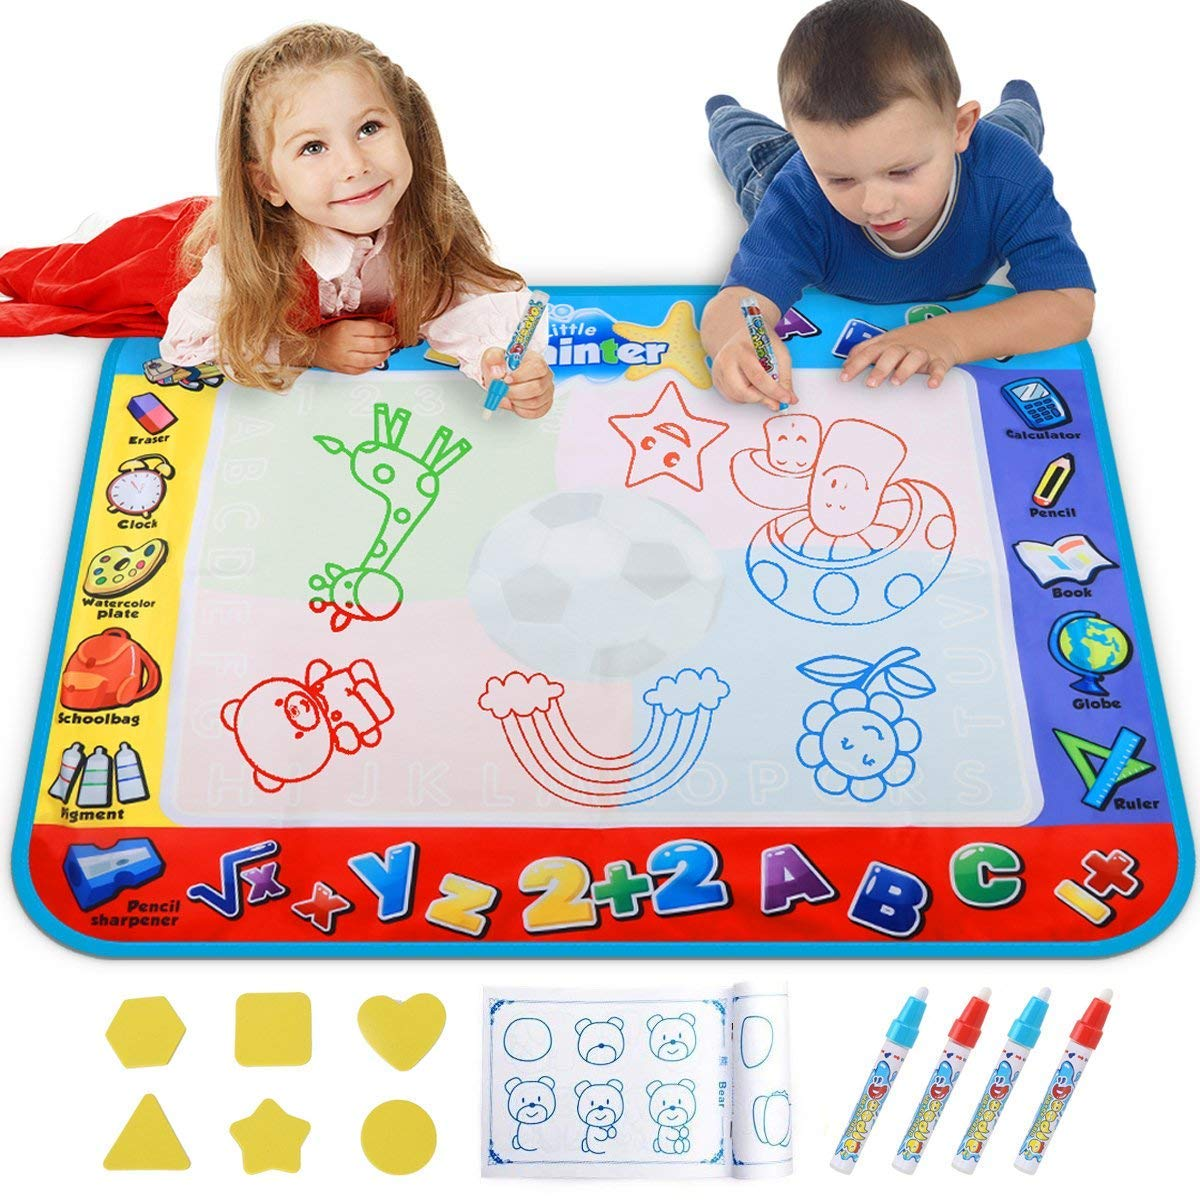 Alago Water Doodle Mat Kids Toys Large Aqua Mat Toddlers Painting Coloring Pad with 4 Colors Gifts for Girls Boys Age 2 3 4 5  Years Old 4 Pens Drawing Molds and Booklet Included